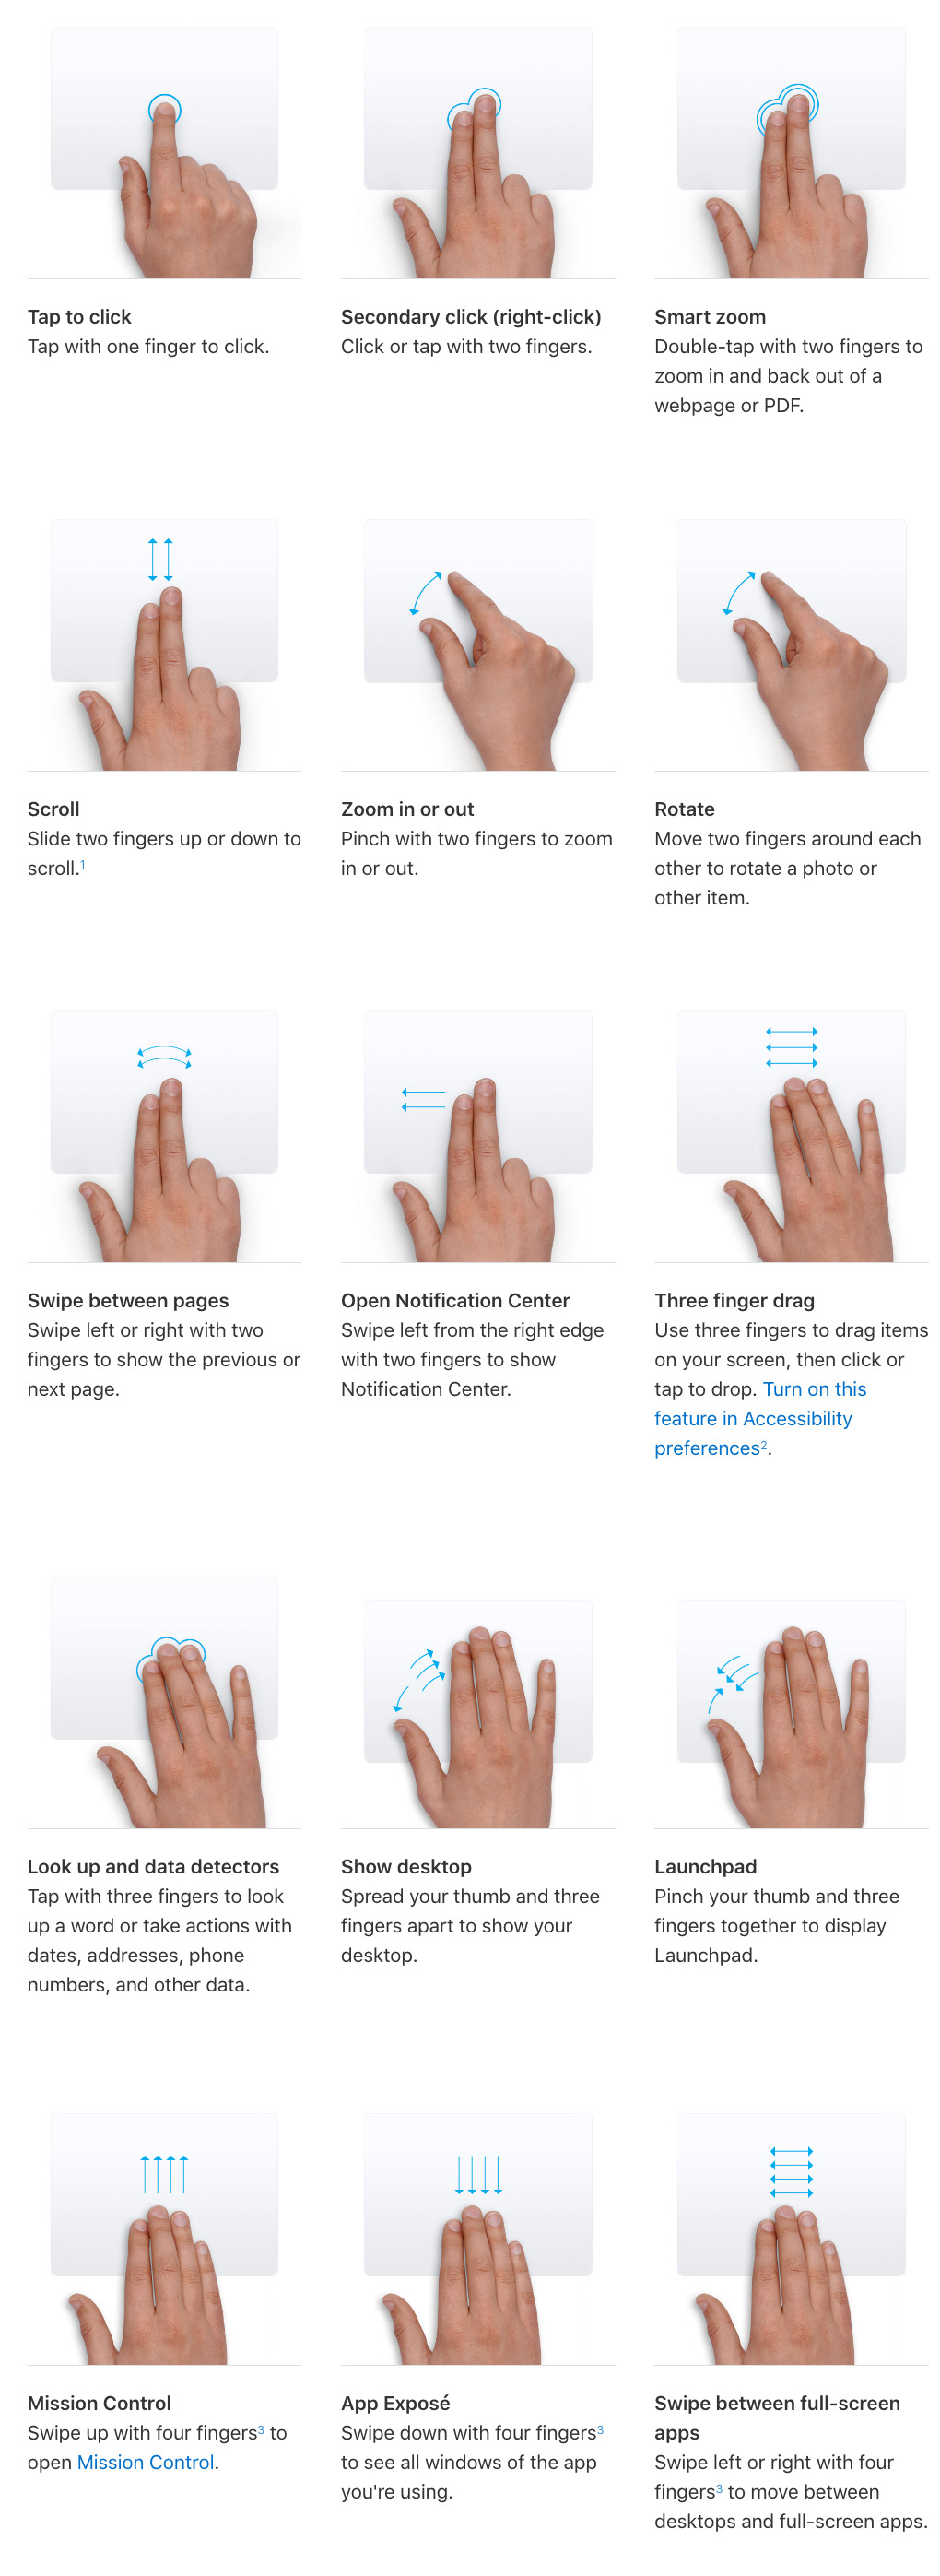 gestures-for-general-computing